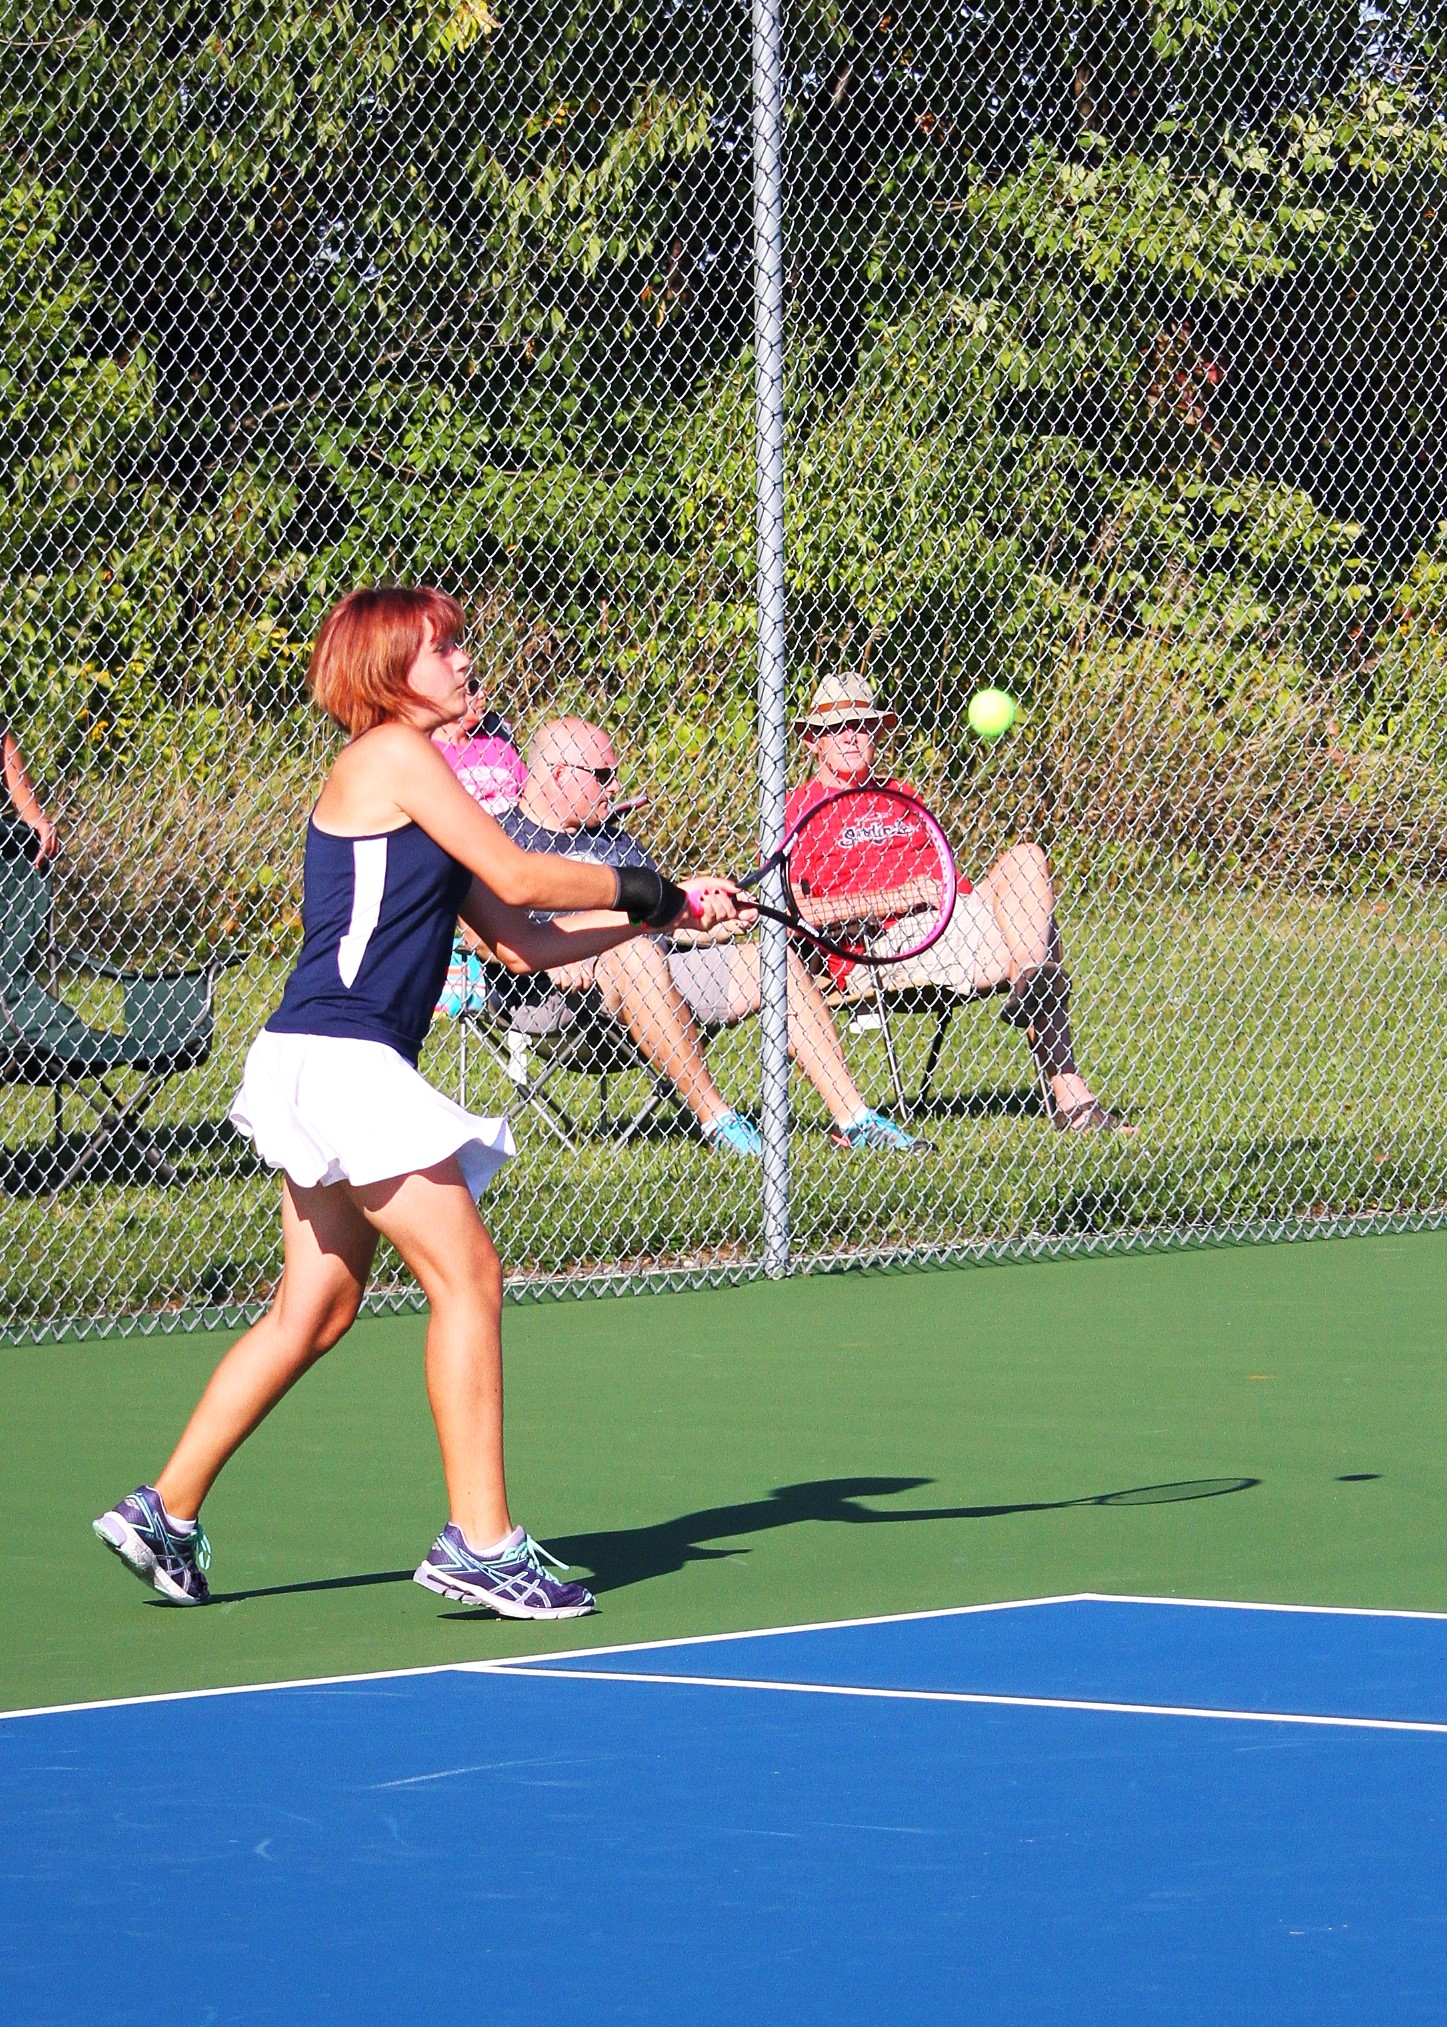 bucyrus girls Get the latest bucyrus high school girls tennis news, rankings, schedules, stats, scores, results, athletes info, and more at clevelandcom.